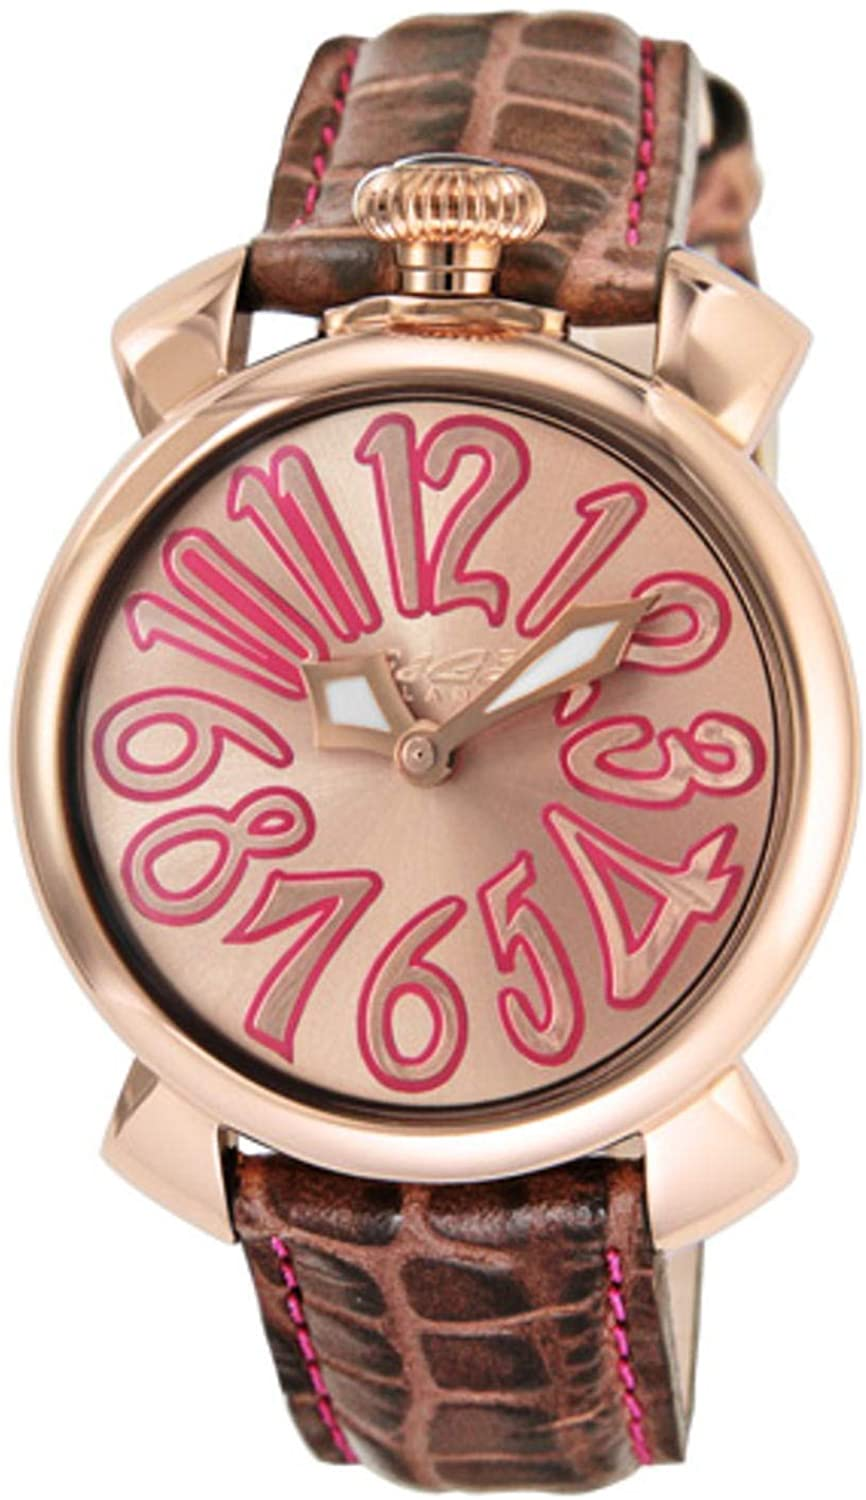 GaGà Milano Manuale 40MM Ladies Watch Rose Gold Pink - Watches & Crystals